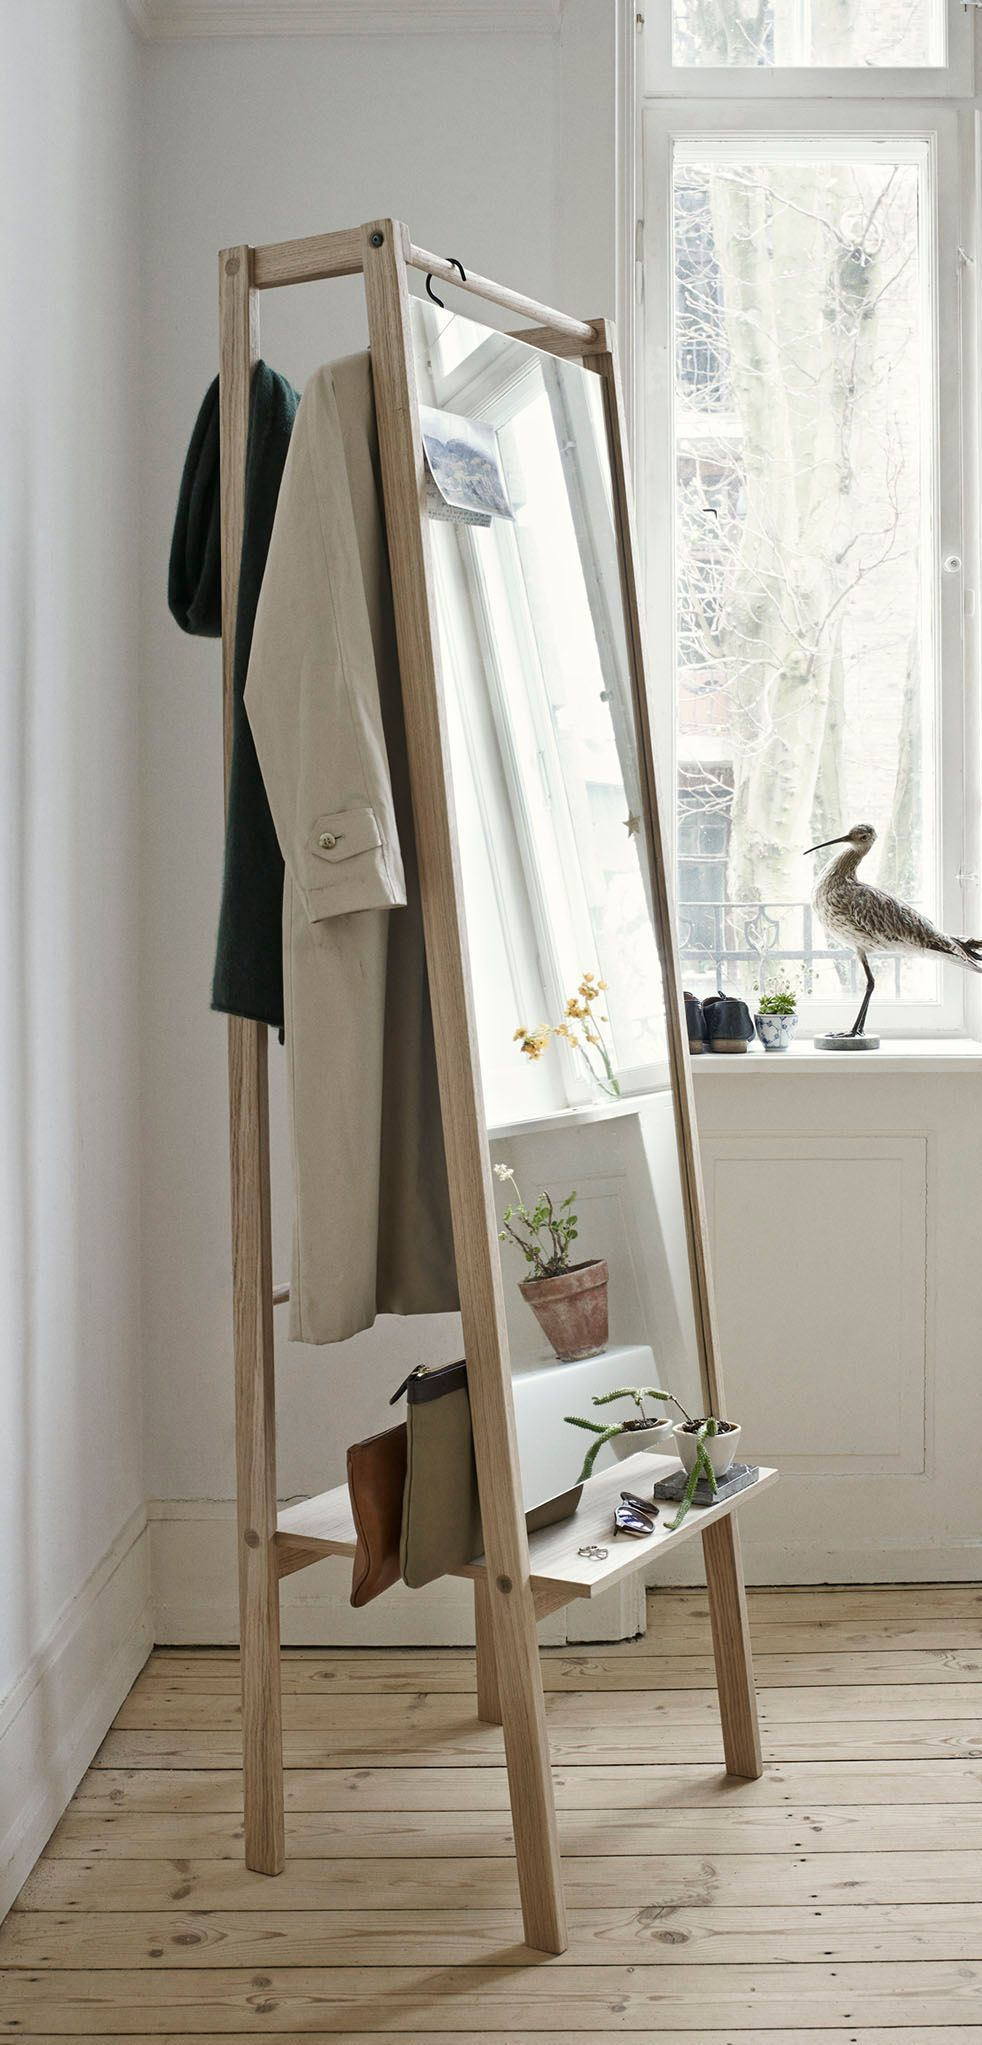 Easel clothes rack | Closets + Clothing Organization | Pinterest ...